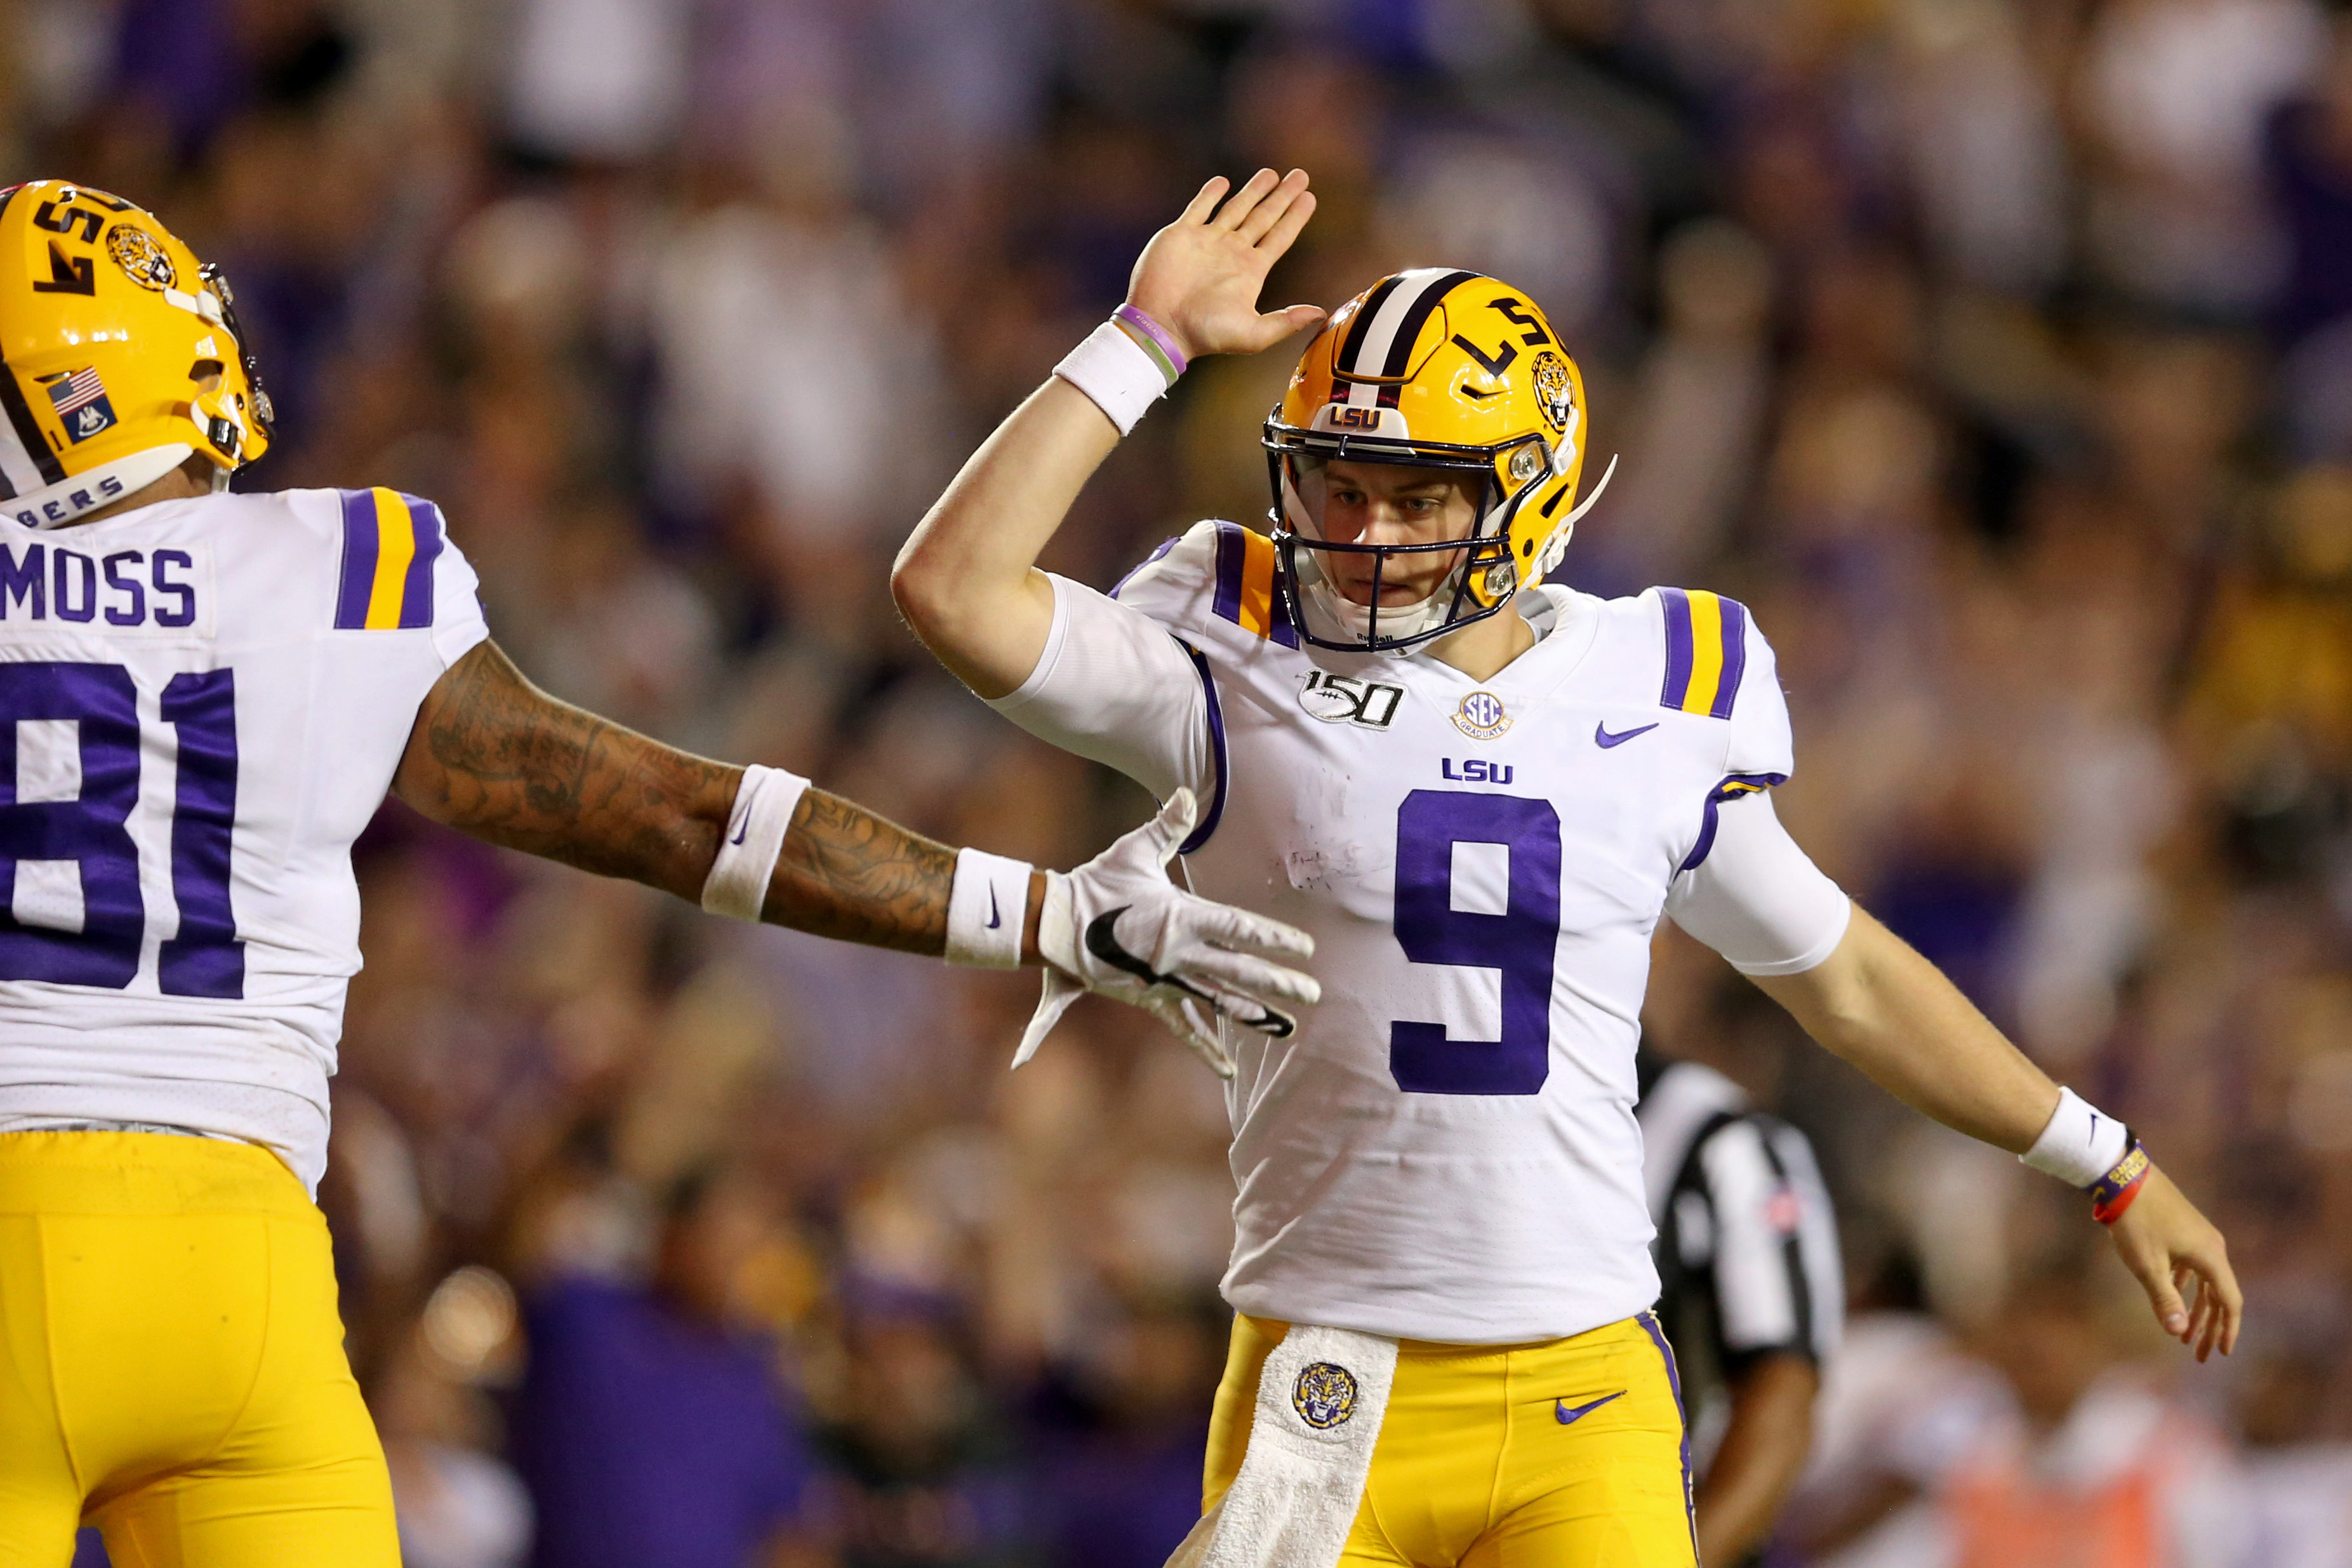 Brett McMurphy's AP Top 25 Poll for Week 8: LSU is New No. 1 Team